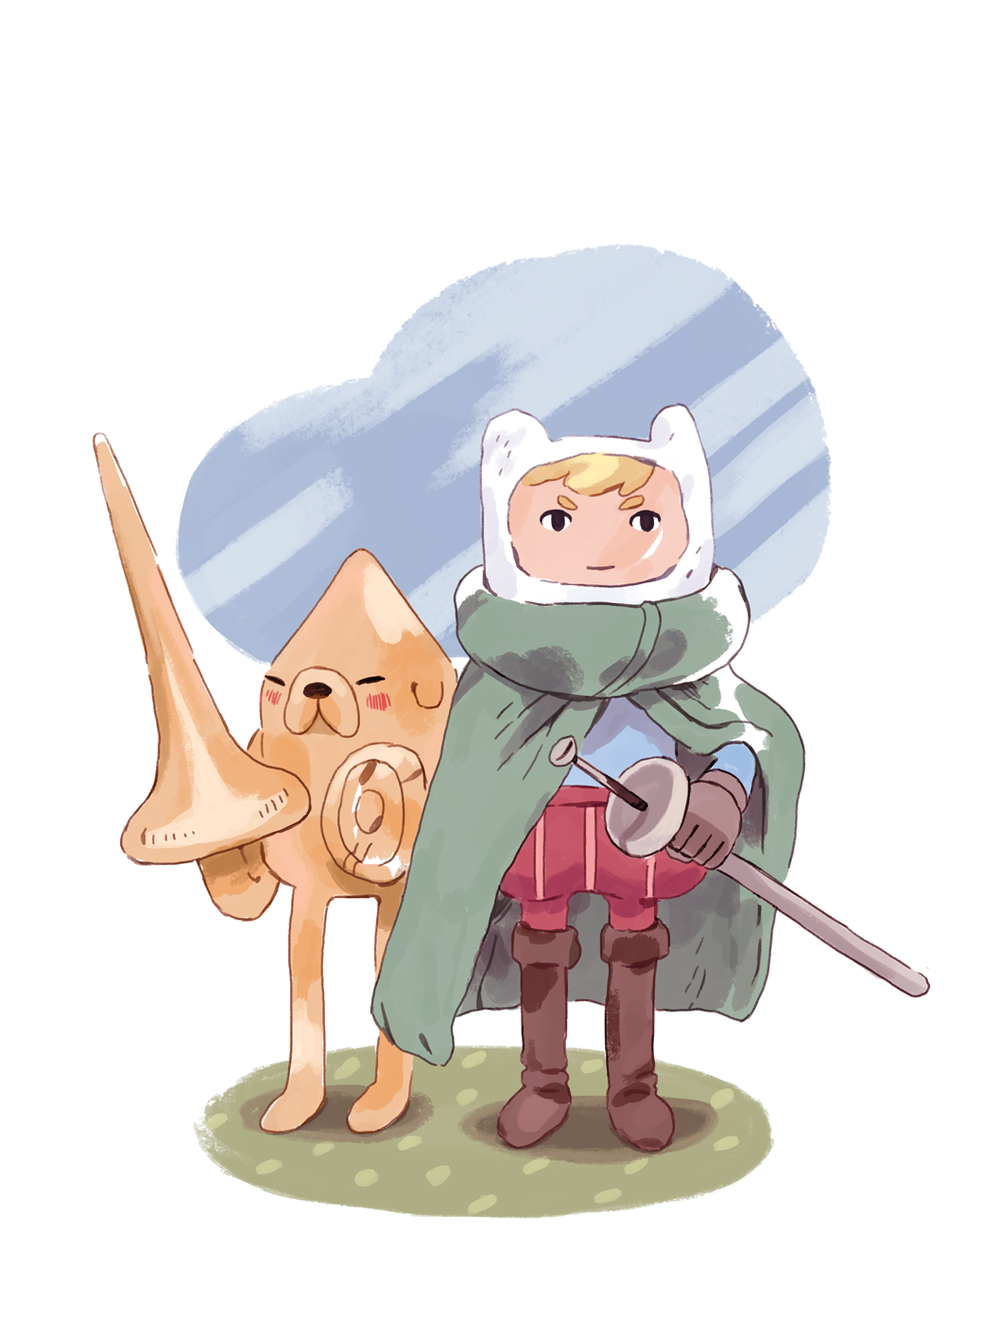 finn-and-jake-web.png